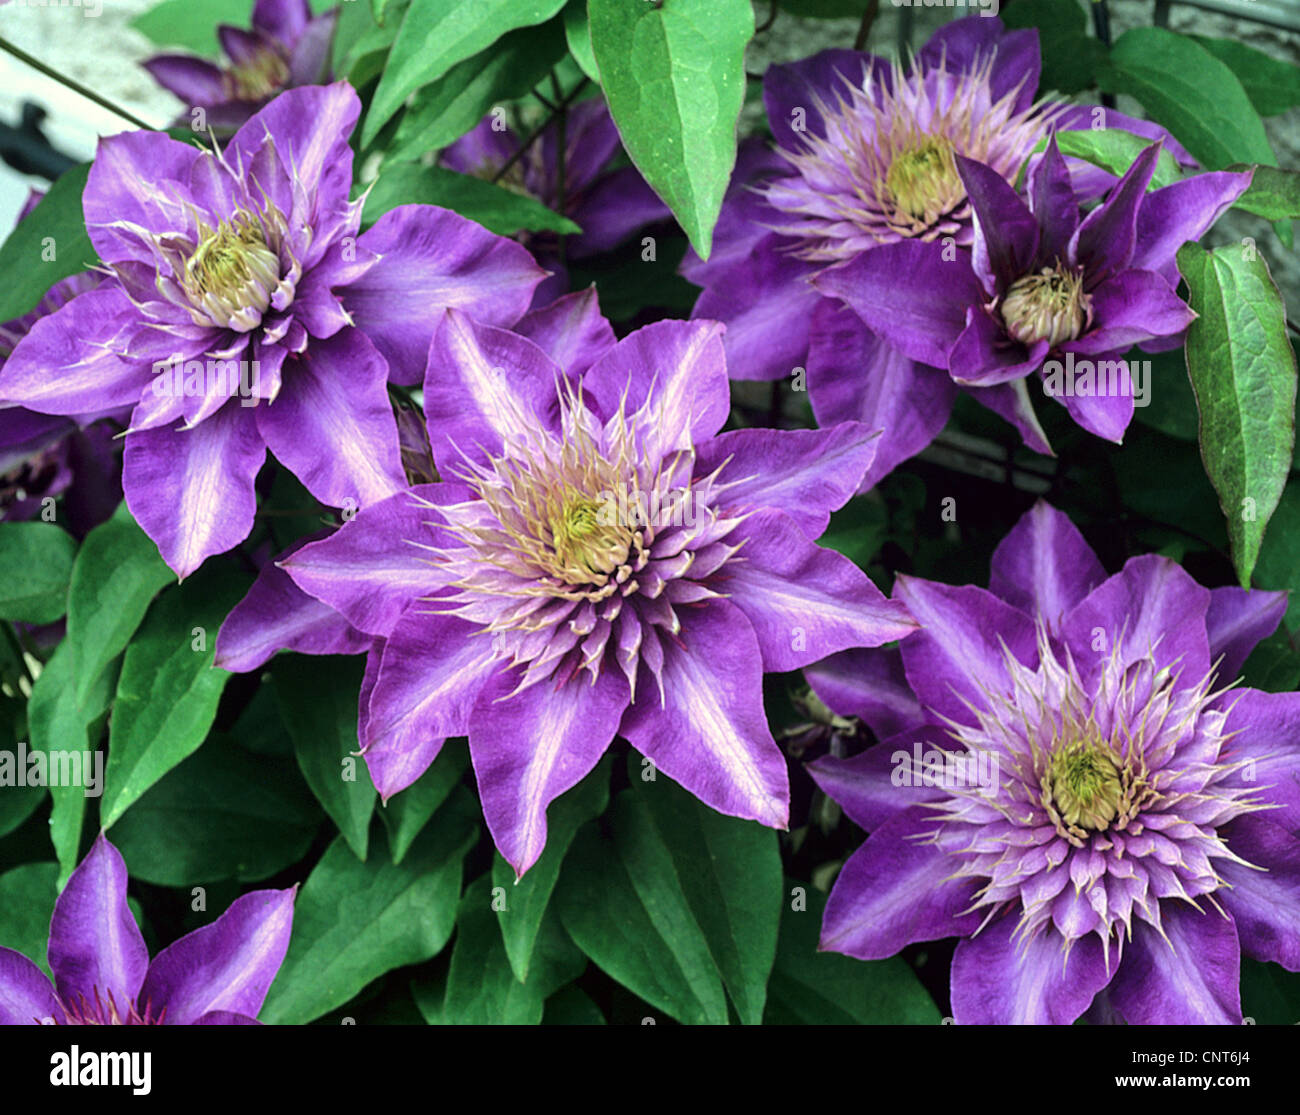 clematis virgins bower clematis spec cultivar 39 multi blue 39 stock photo royalty free image. Black Bedroom Furniture Sets. Home Design Ideas